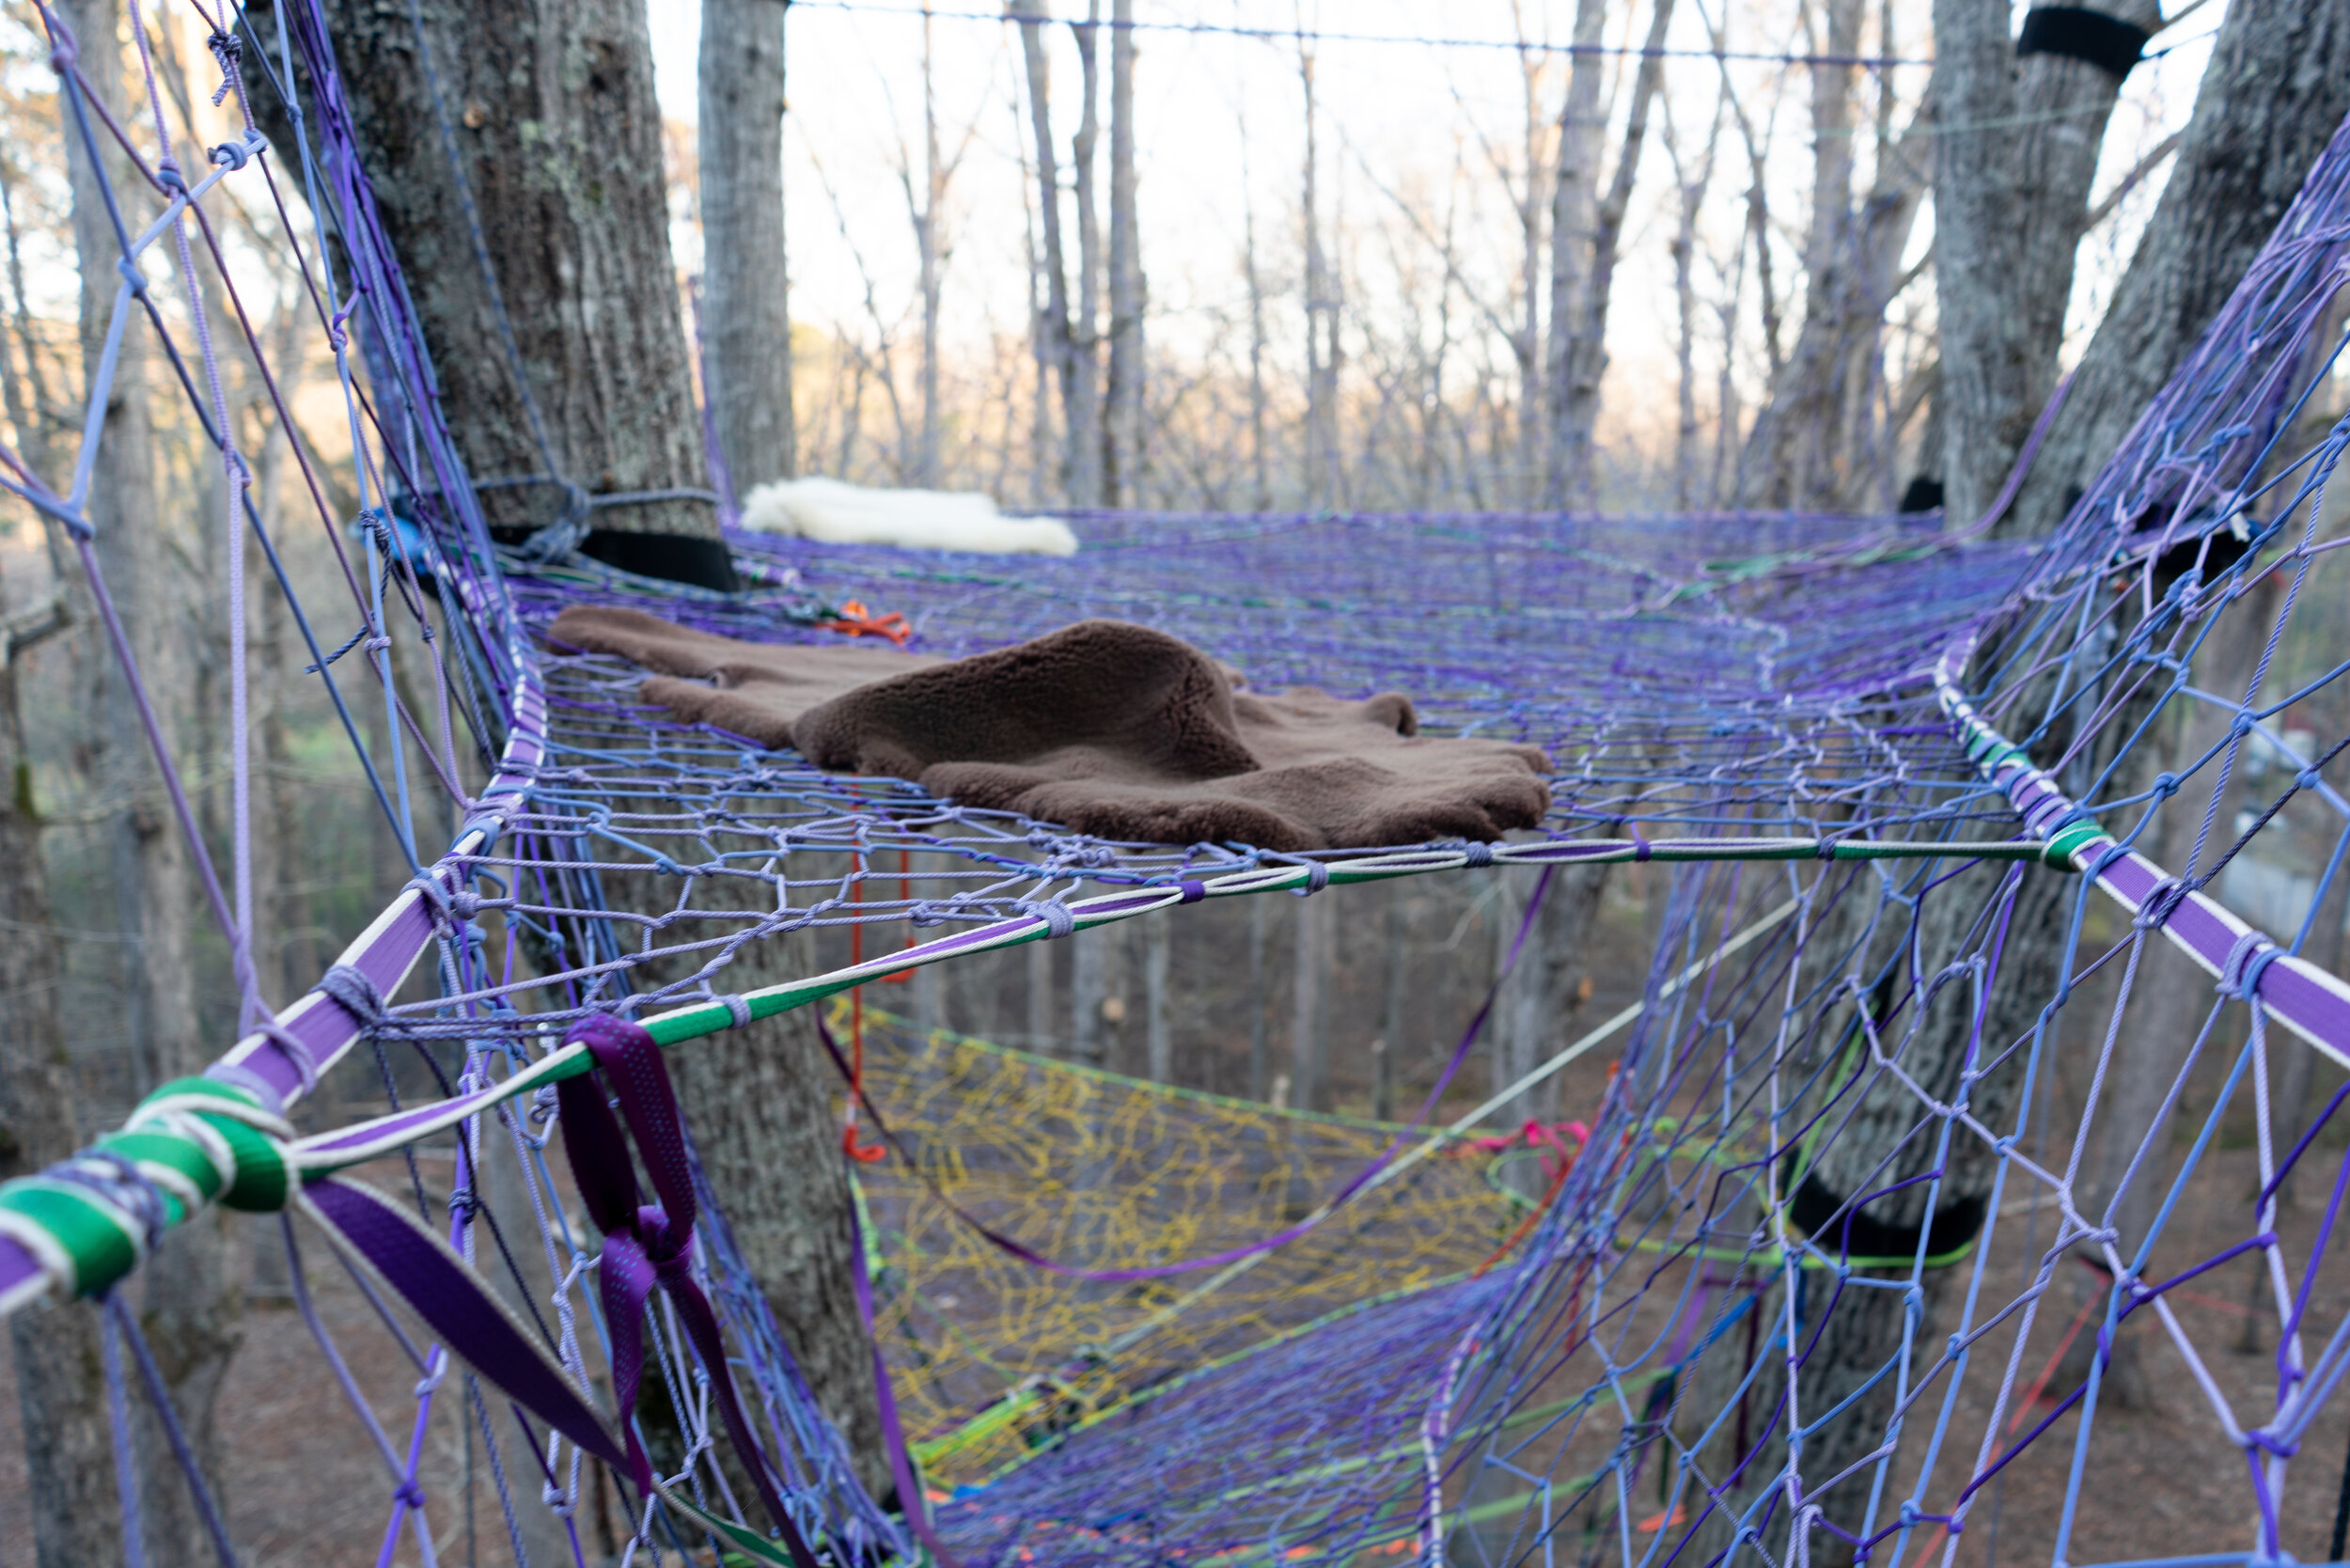 Purple is Elegant - Regarded world wide for its precious beauty, purple is our favorite color for tree nets.